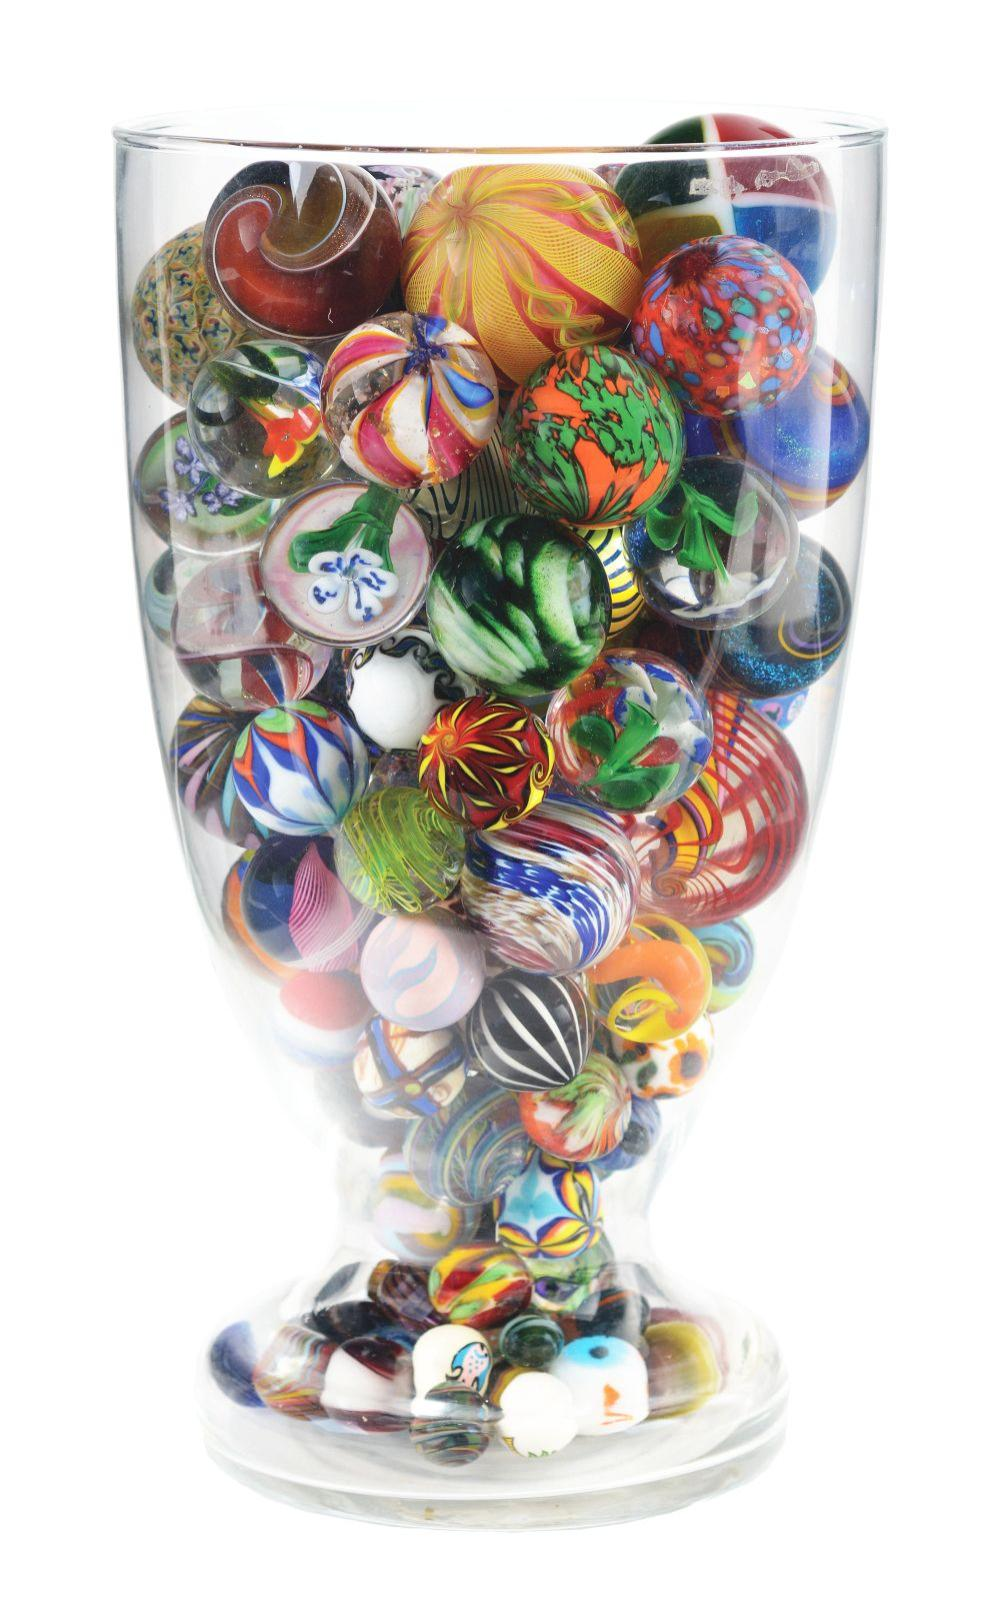 Jar Full of Contemporary Marbles.